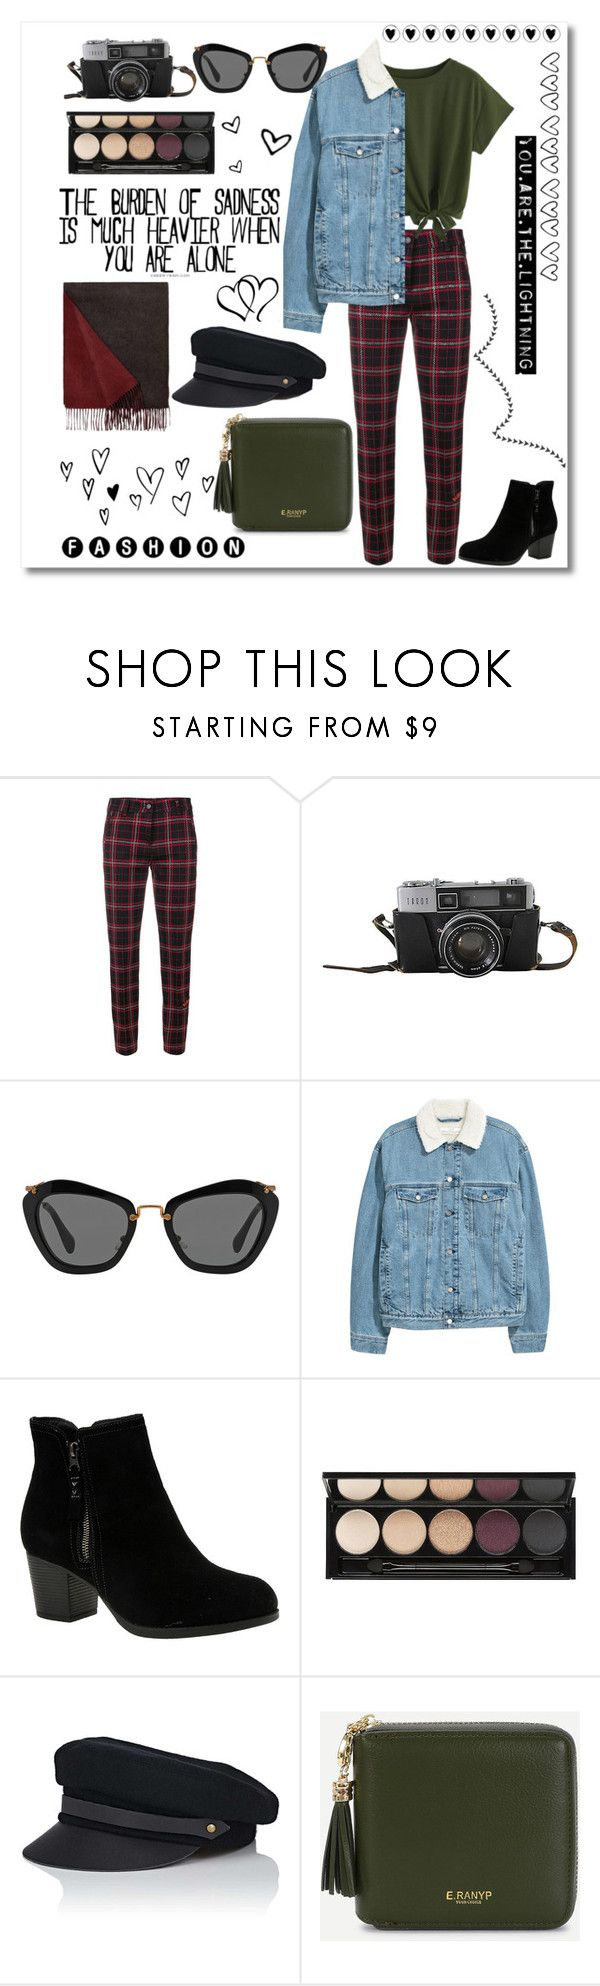 """""""Untitled #33"""" by alena-sky ❤ liked on Polyvore featuring Cambio, Miu Miu, Skechers, Witchery, Lola, parisfashionweek and Packandgo"""